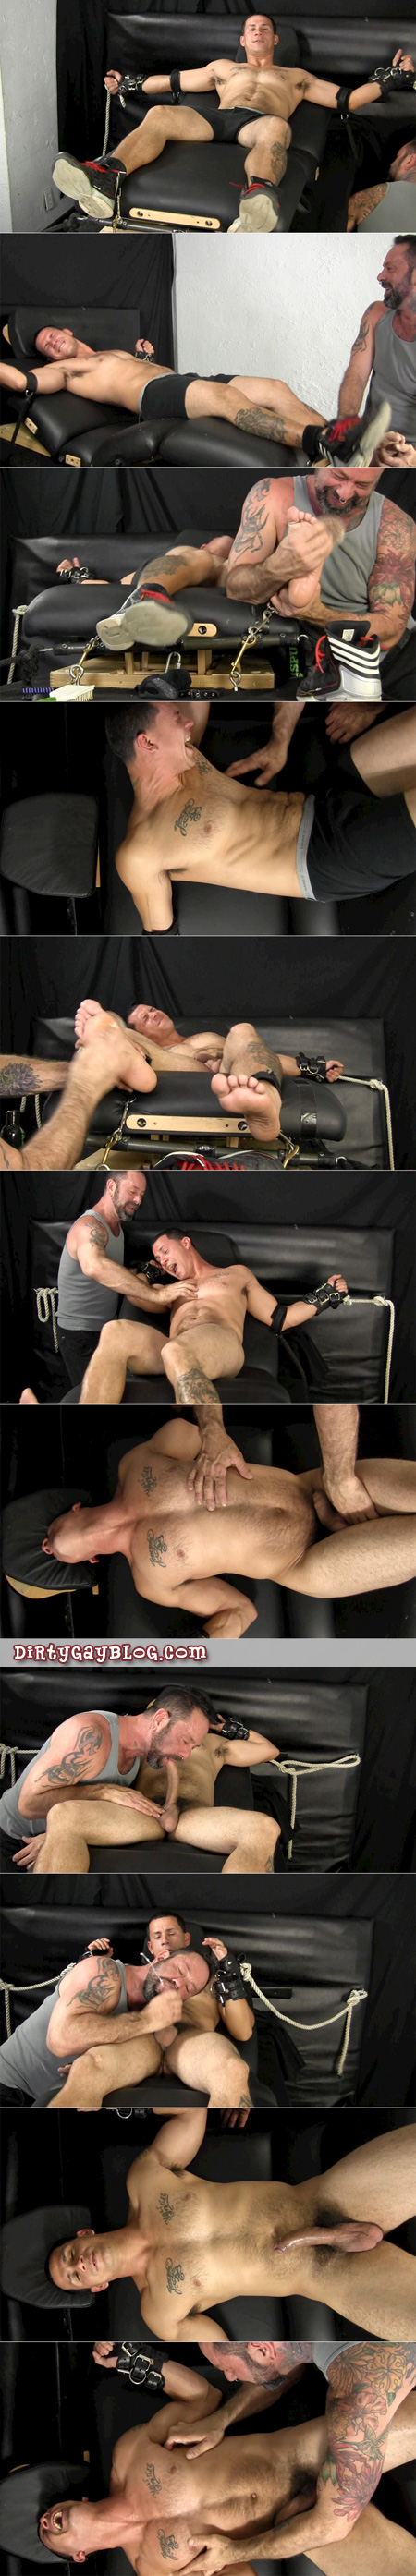 Hung Latino straight guy is bound and tickle tortured naked before getting a blowjob from another guy.